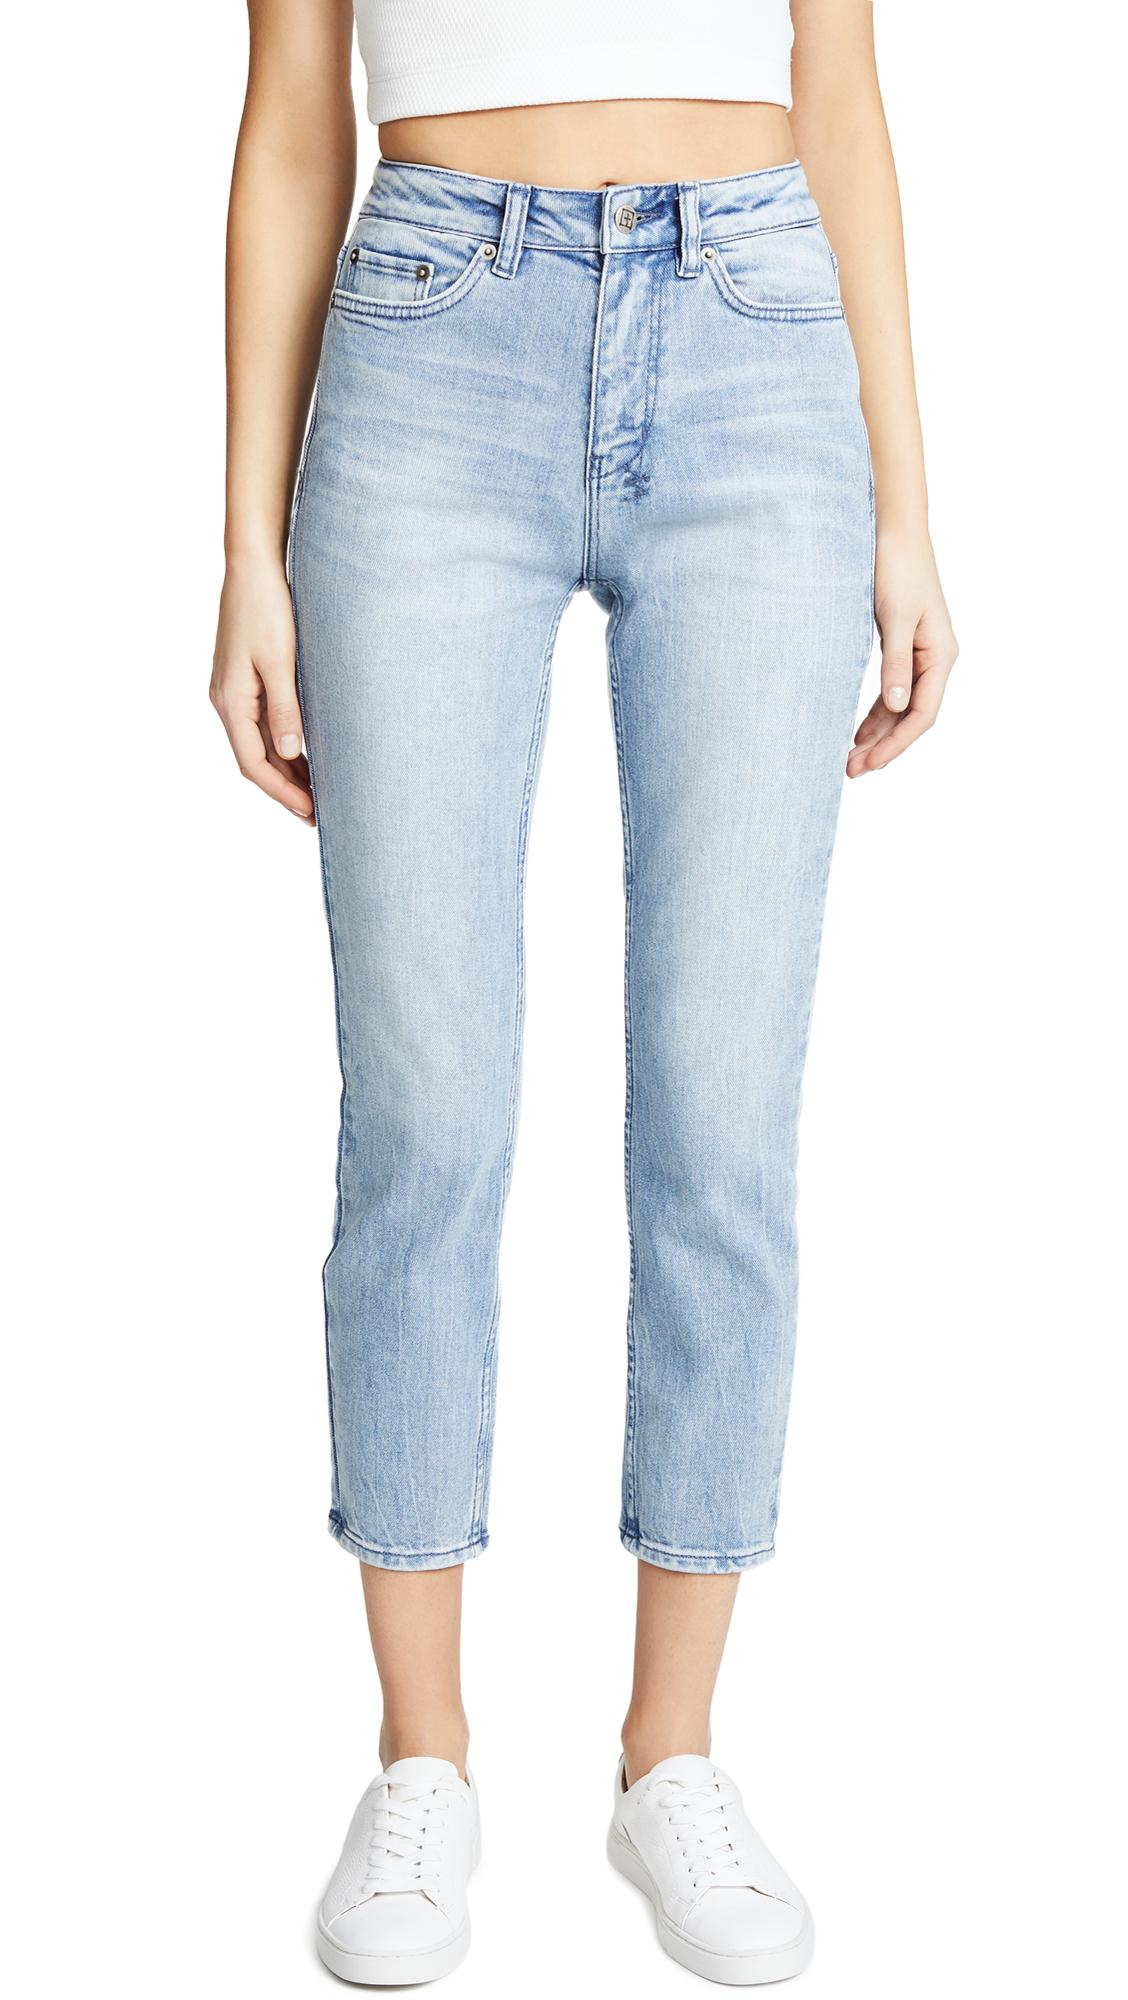 933592a831c Ksubi The Slim Pin Crop Jeans In Errrday Blue | ModeSens